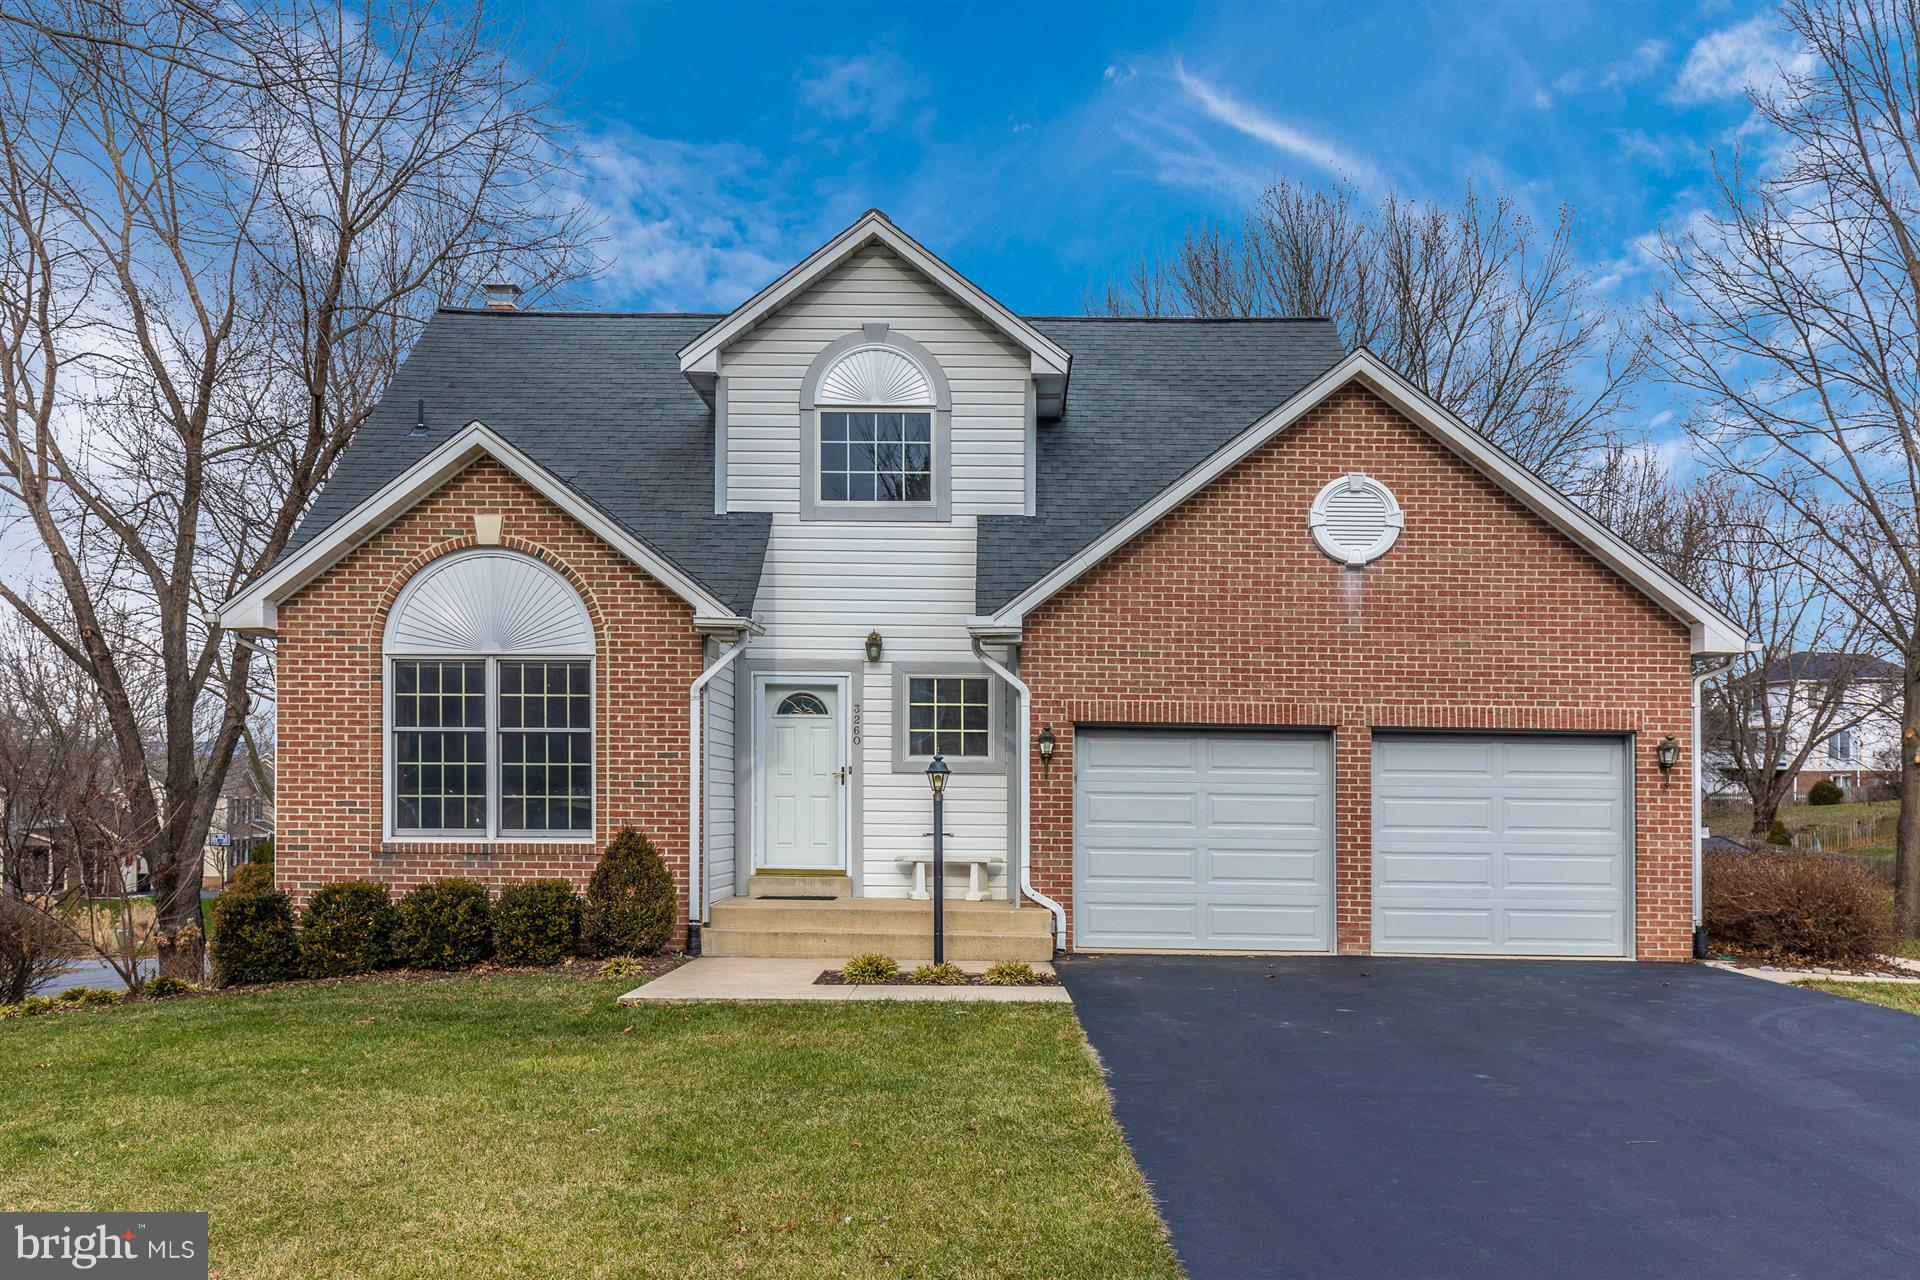 3260 BROCKTON DRIVE, JEFFERSON, MD 21755